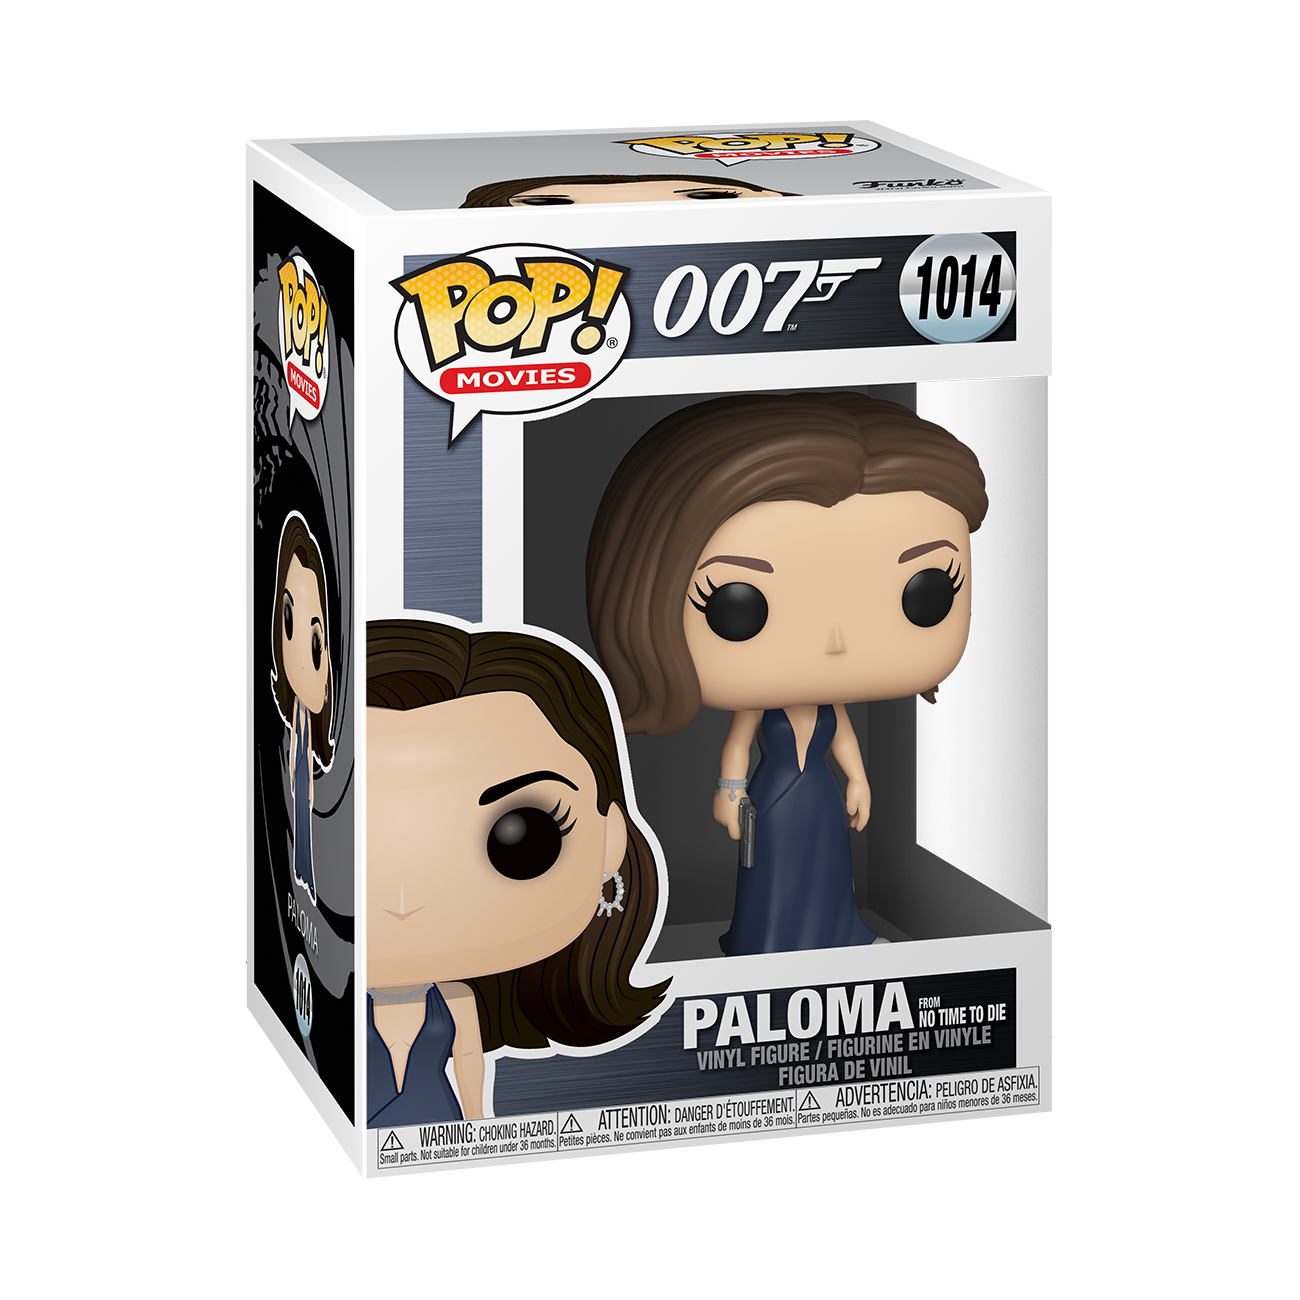 Funko POP! Movies 007 Paloma From No Time To Die #1014